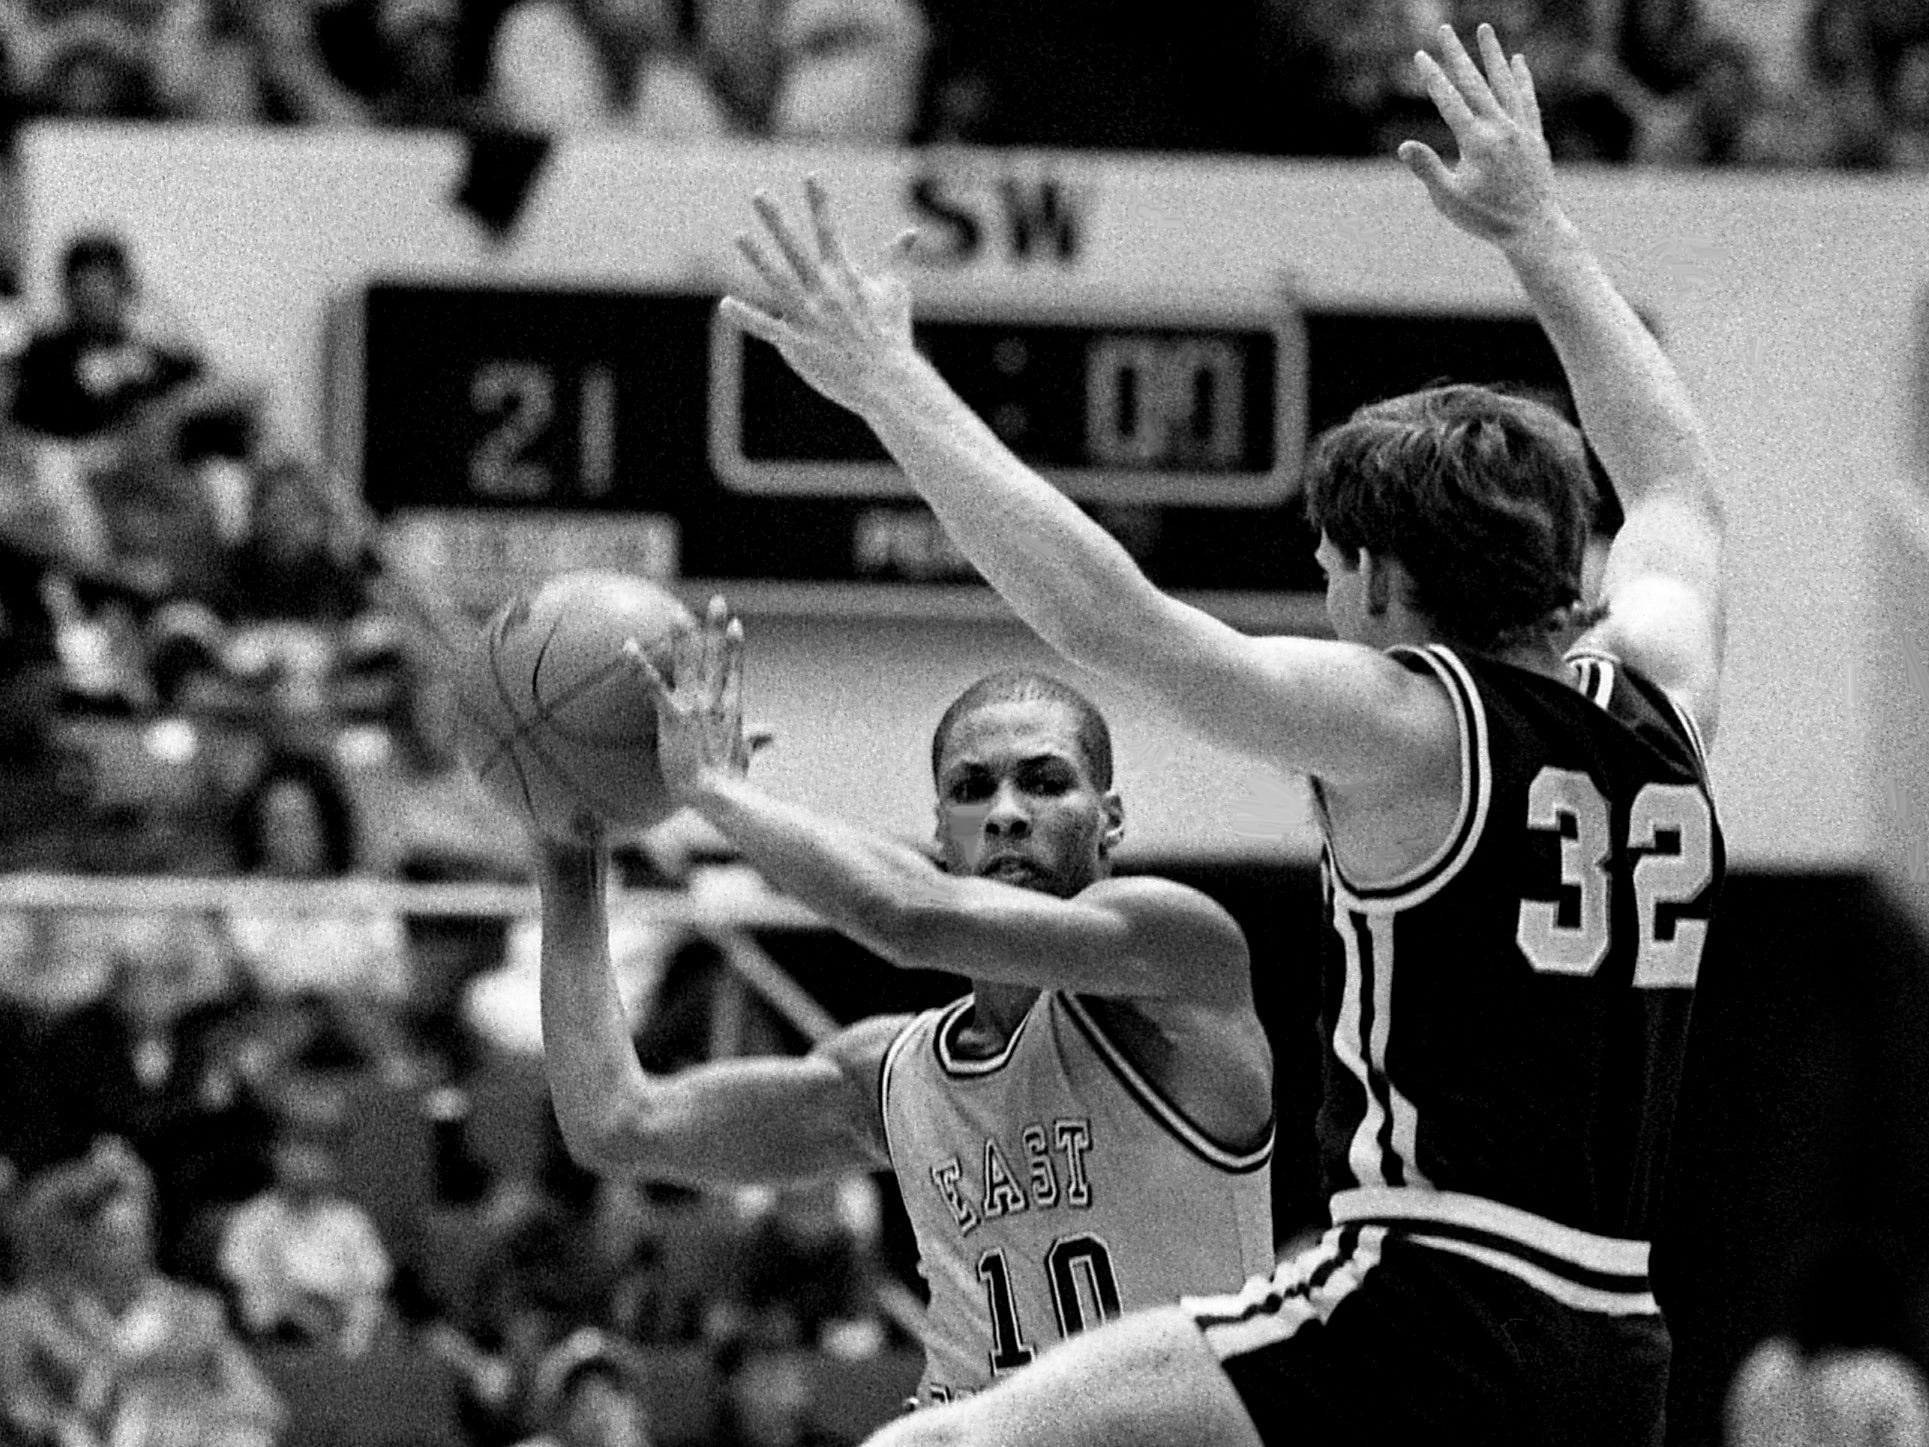 East Robertson High guard Tyrone Dotson (10) looks to pass around Keith Duggins of Oliver Springs High (32) during East Robertson's 83-62 TSSAA Class A state championship victory at MTSU's Murphy Center in Murfreesboro on March 18, 1989.